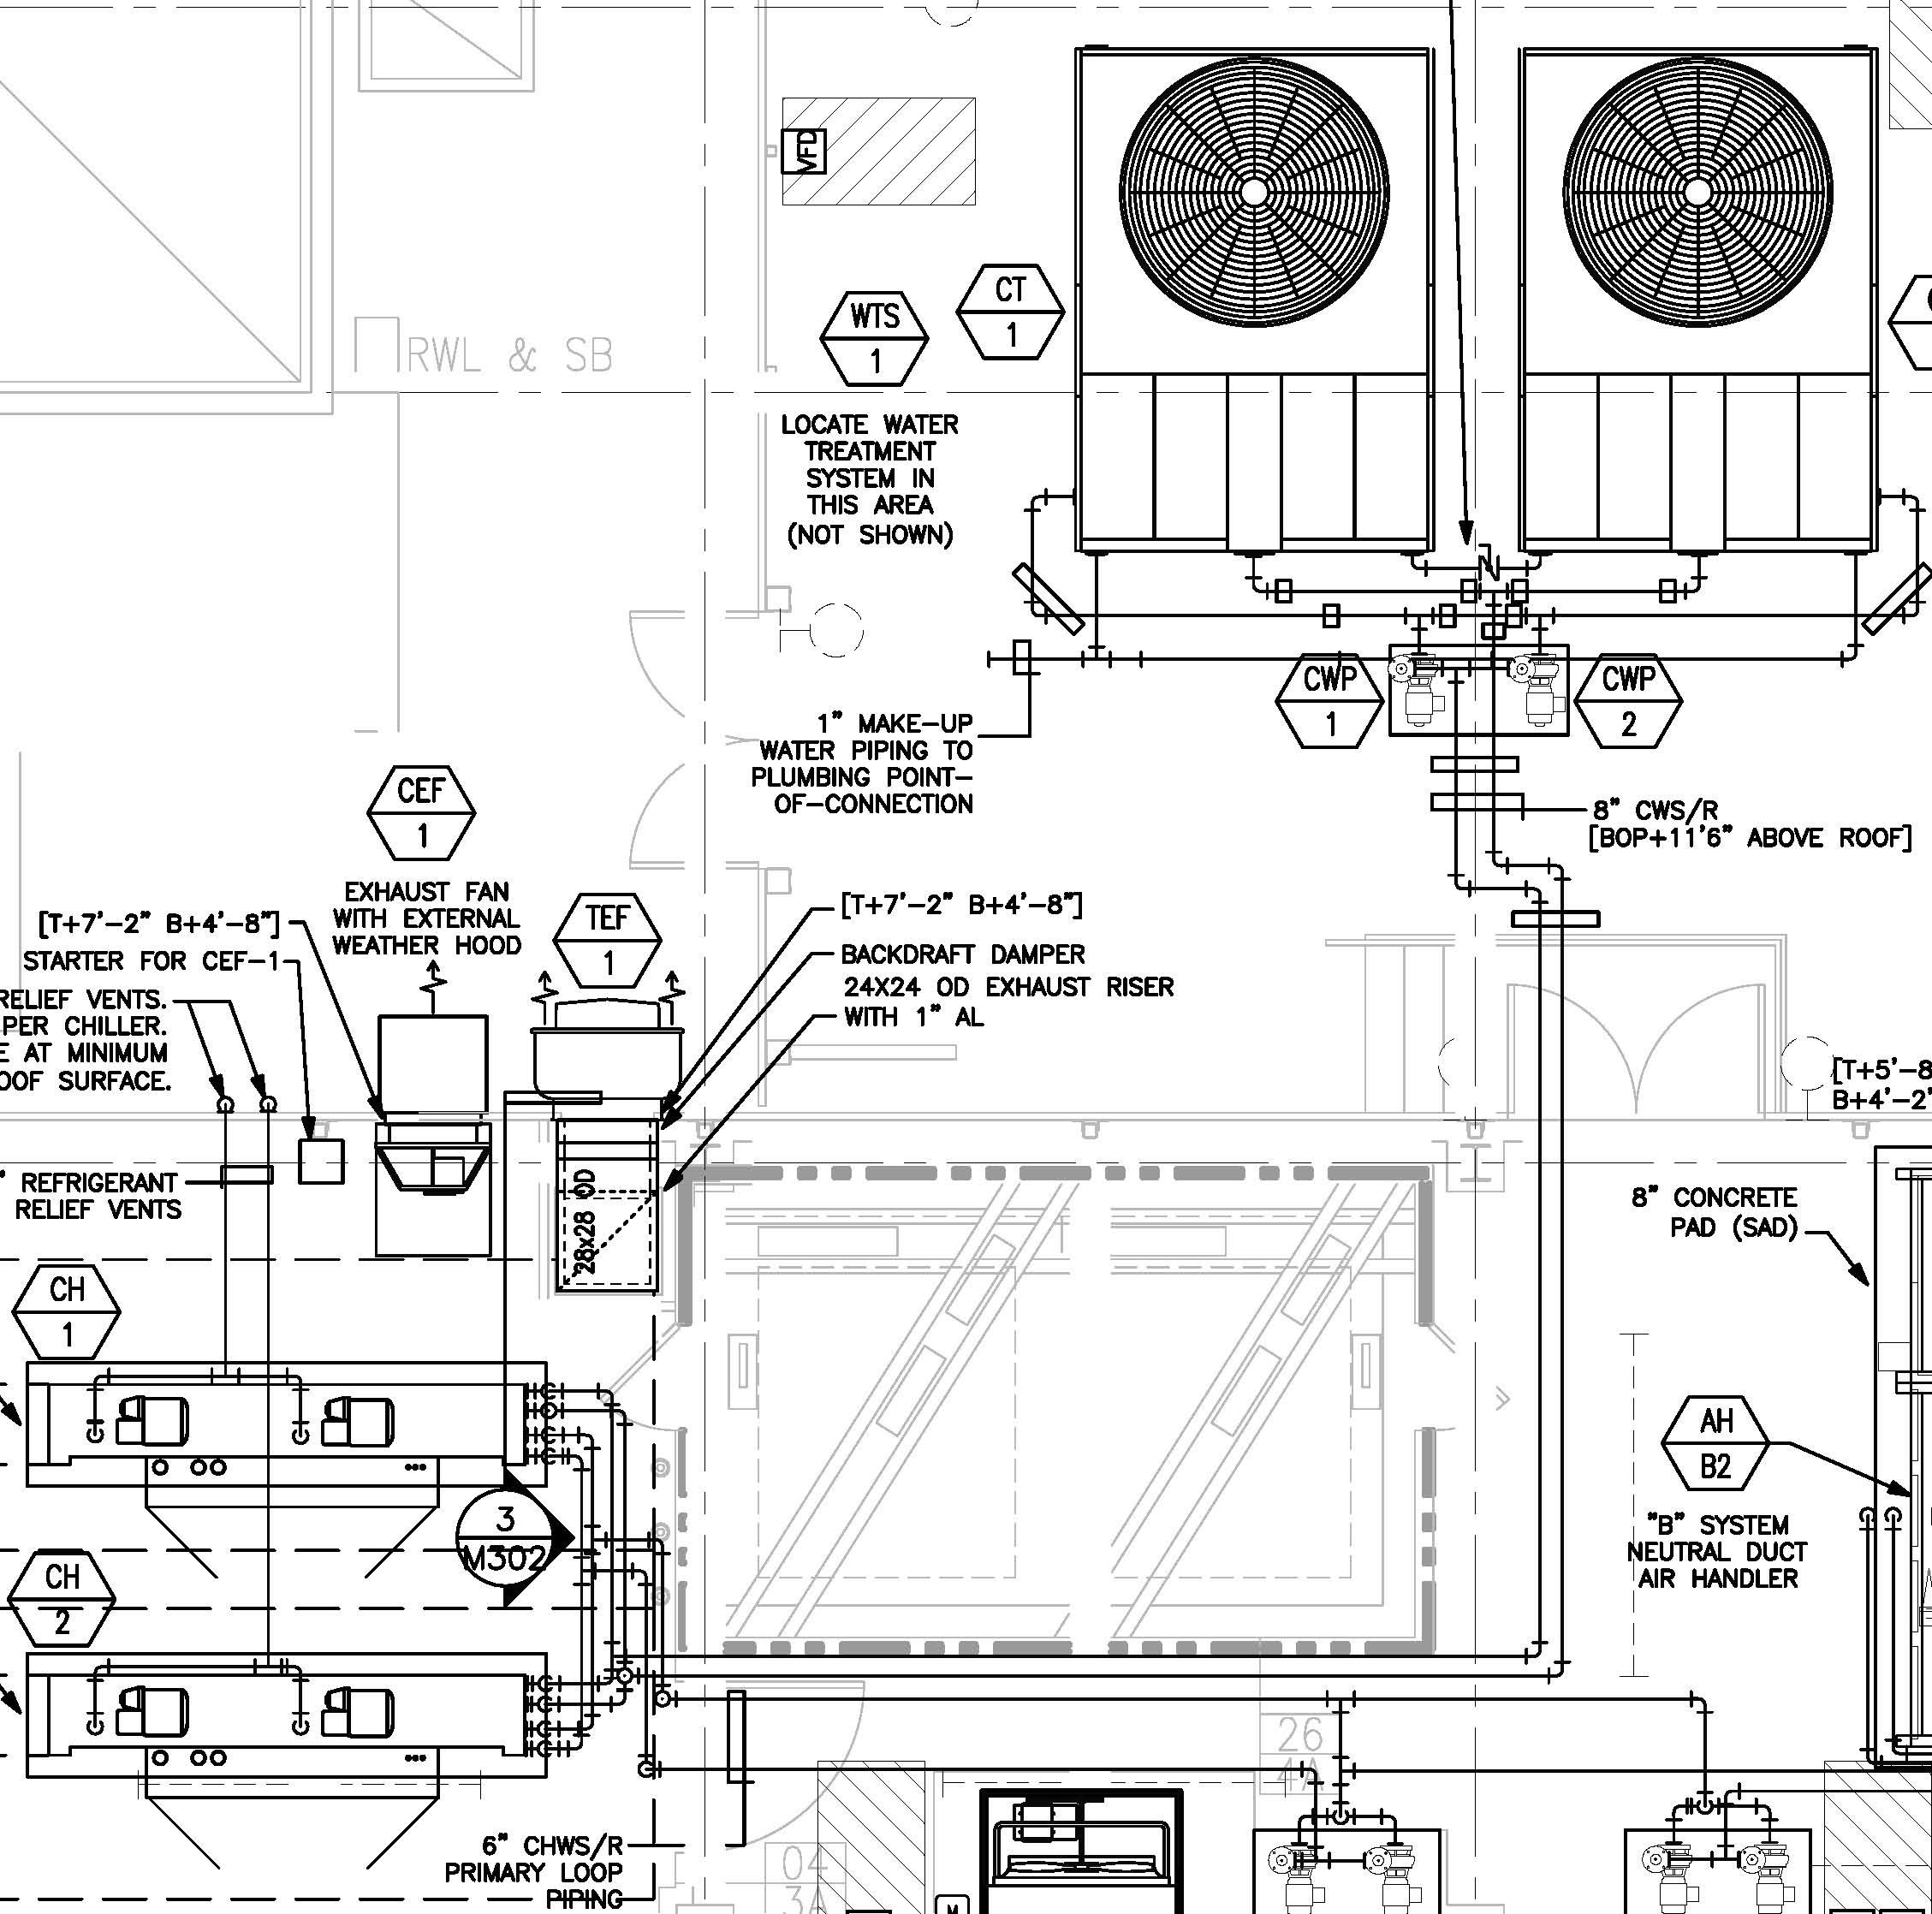 Typical Ac Wiring Diagram Inspirationa Carrier Window Type Aircon Wiring Diagram Chiller Control New and